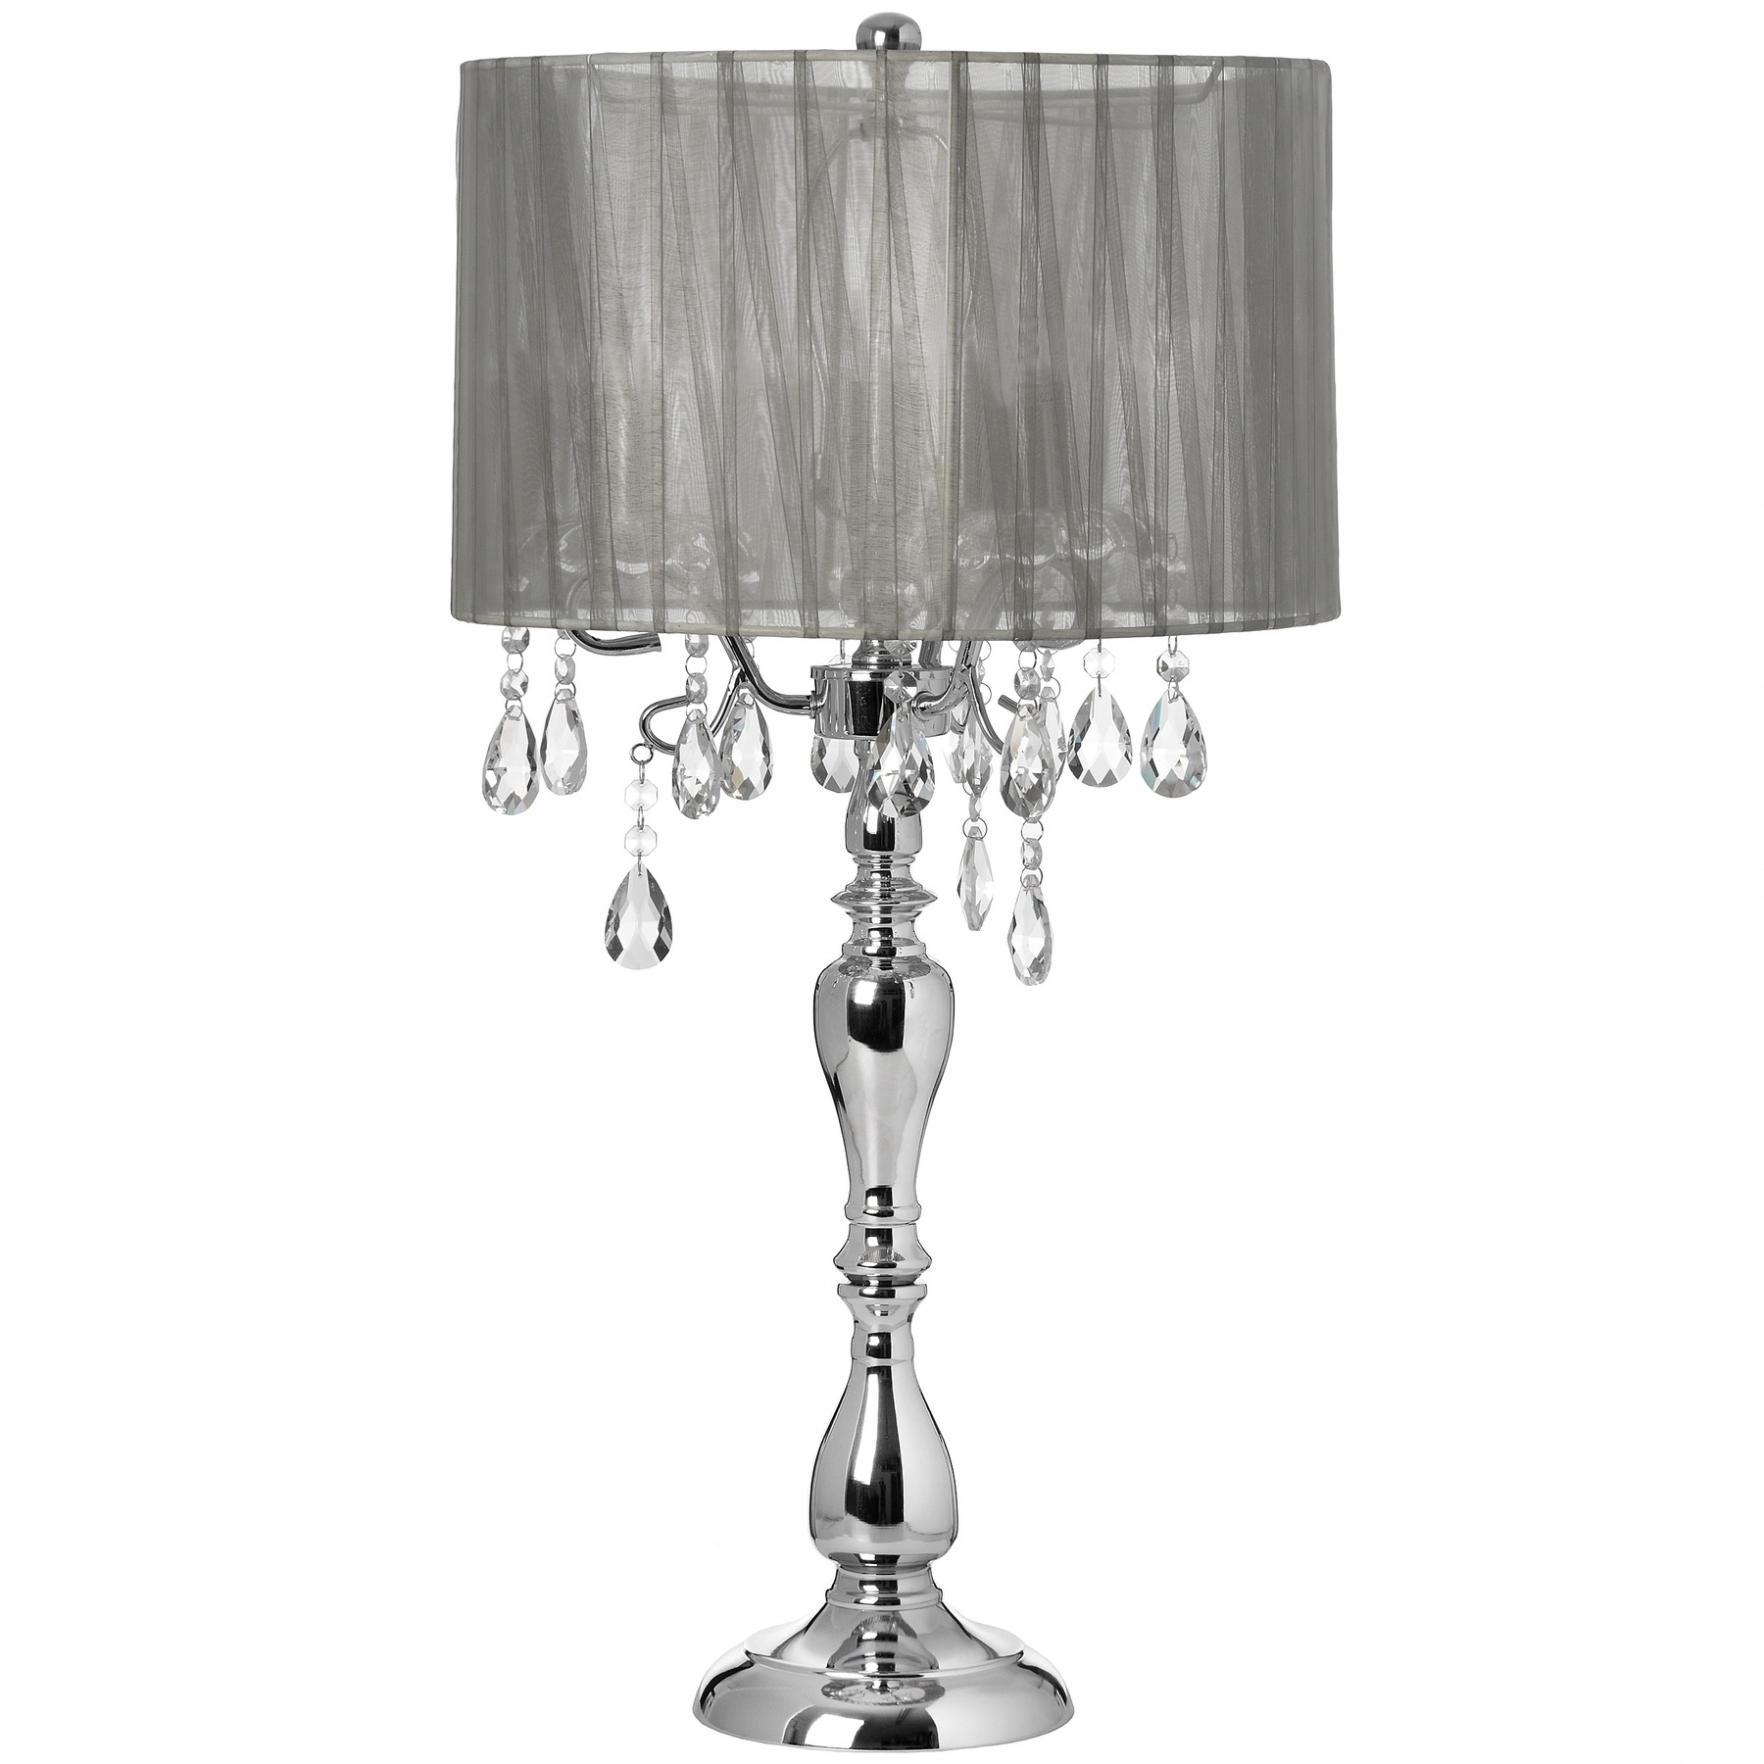 Well Liked Overstock Crystal Chandelier Table Lamps Tags : 59 Capable Crystal Intended For Crystal Table Chandeliers (View 20 of 20)